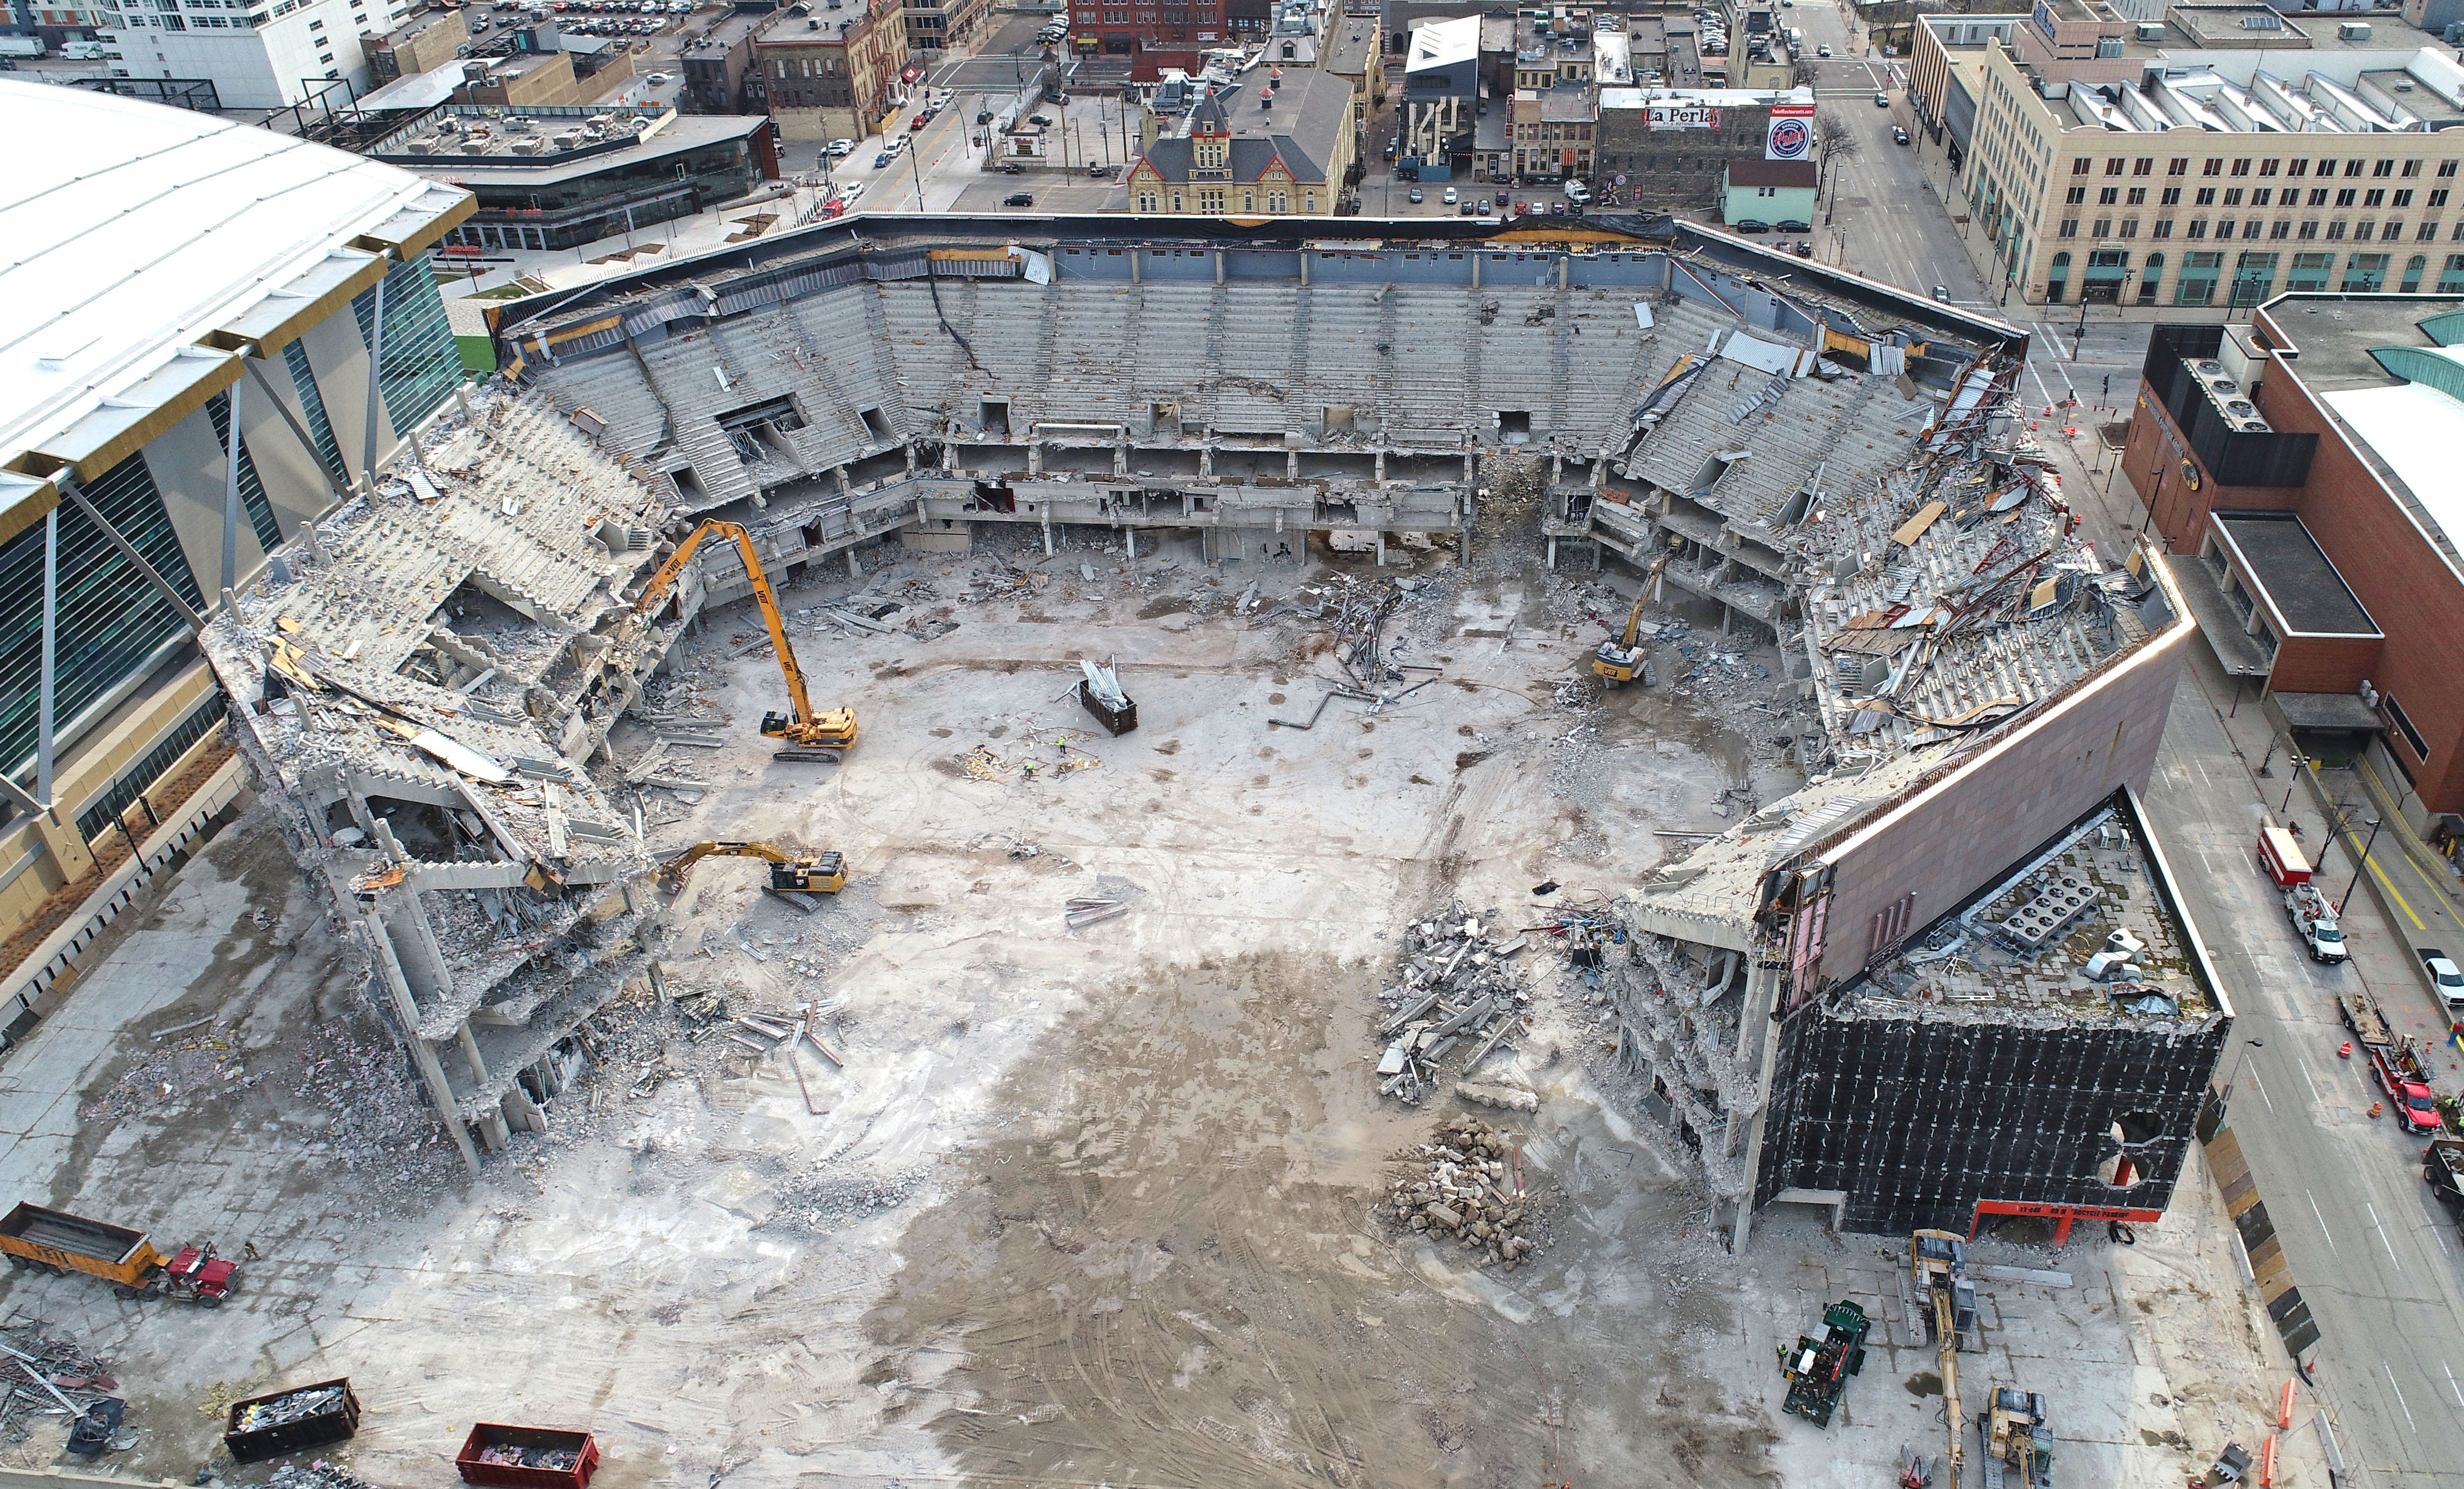 Drone video shows the demolition work that continues at the BMO Harris  Bradley Center